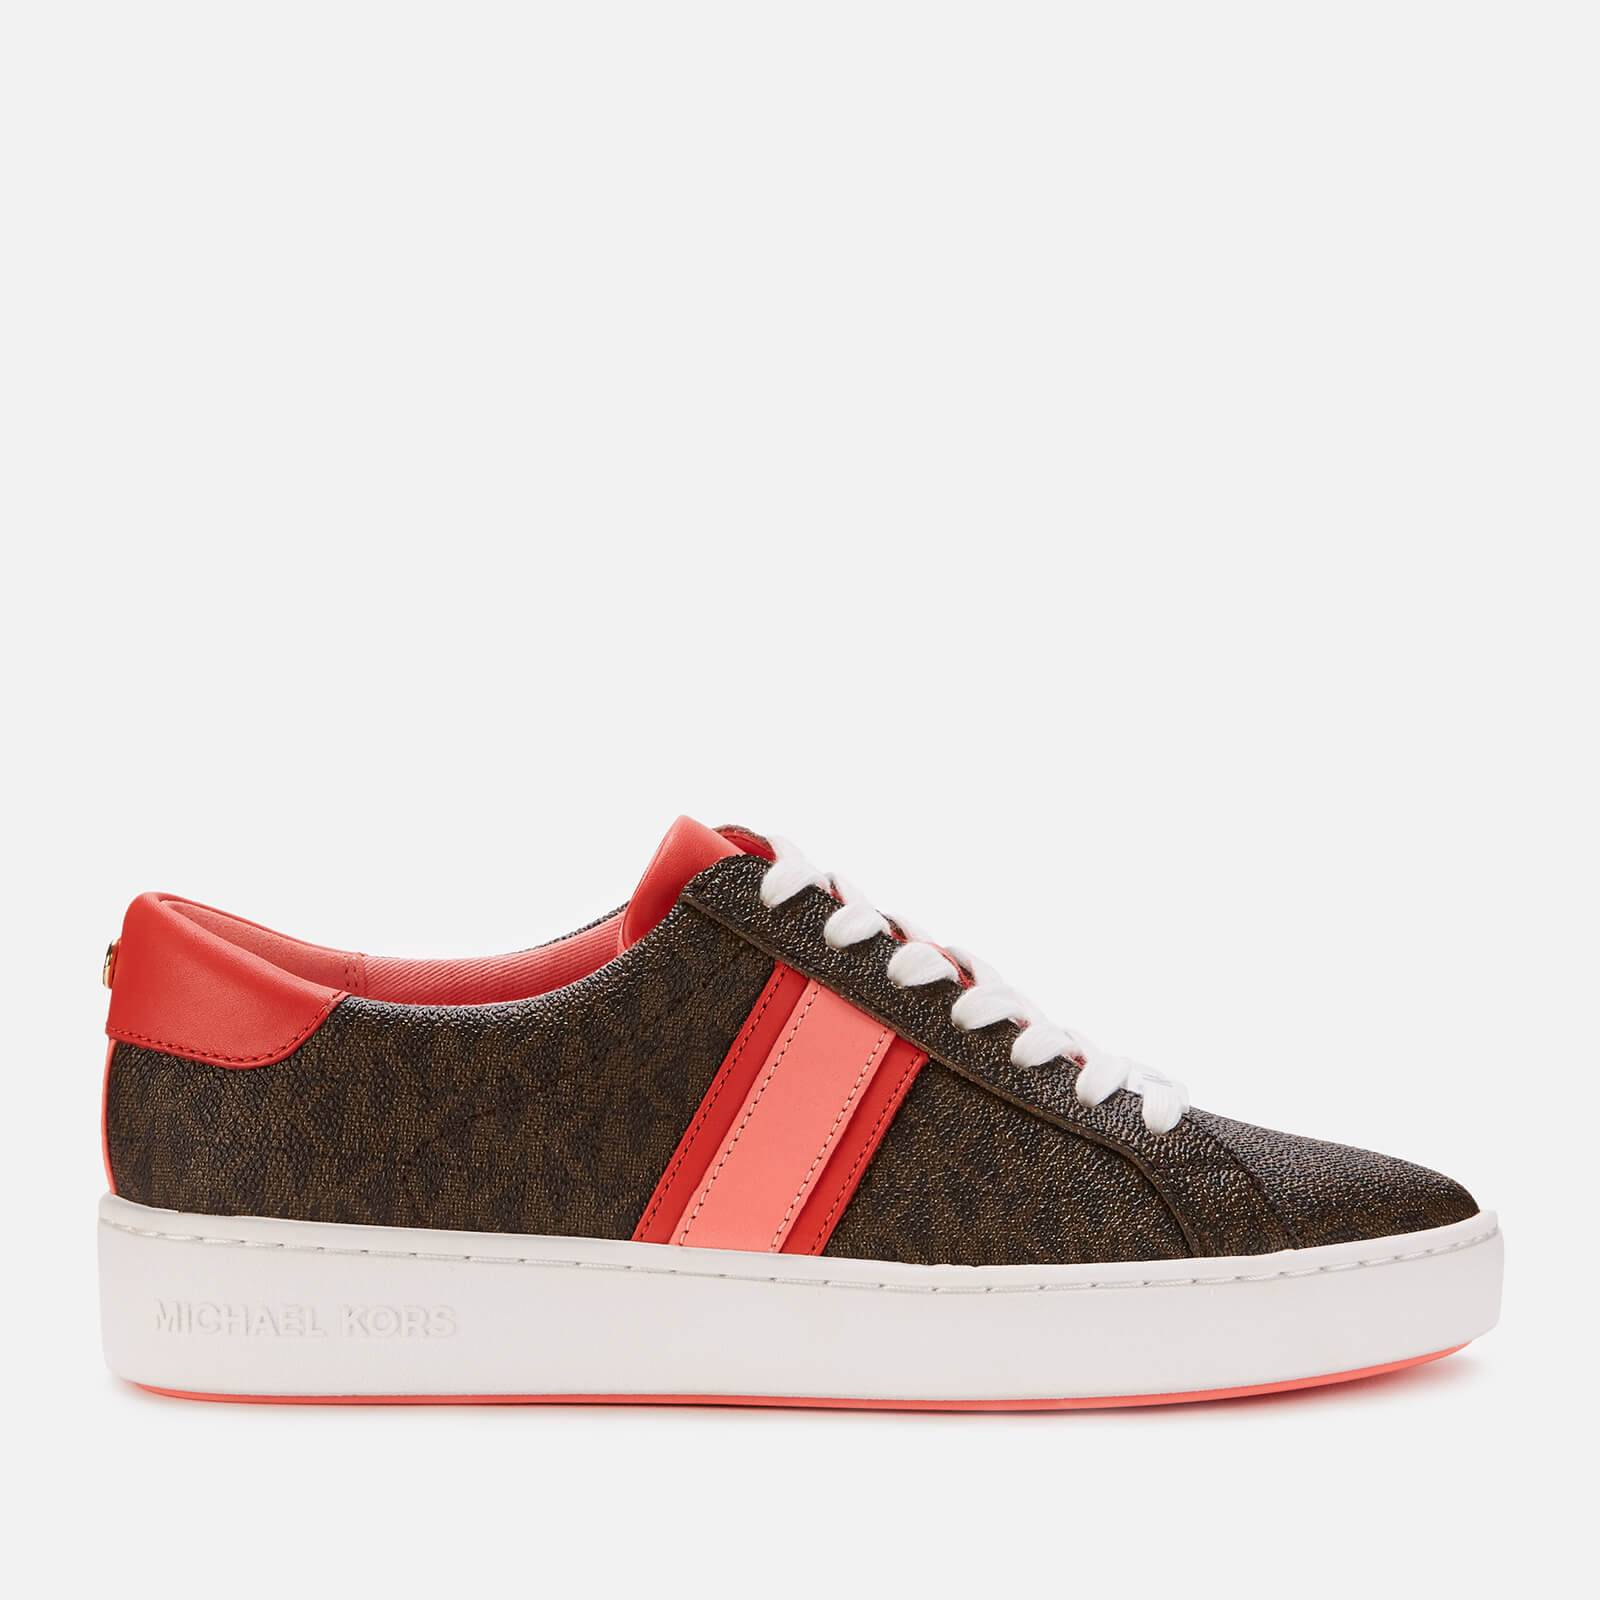 MICHAEL MICHAEL KORS Women's Irving Leather Cupsole Trainers - Brown - UK 6/US 9 - Brown